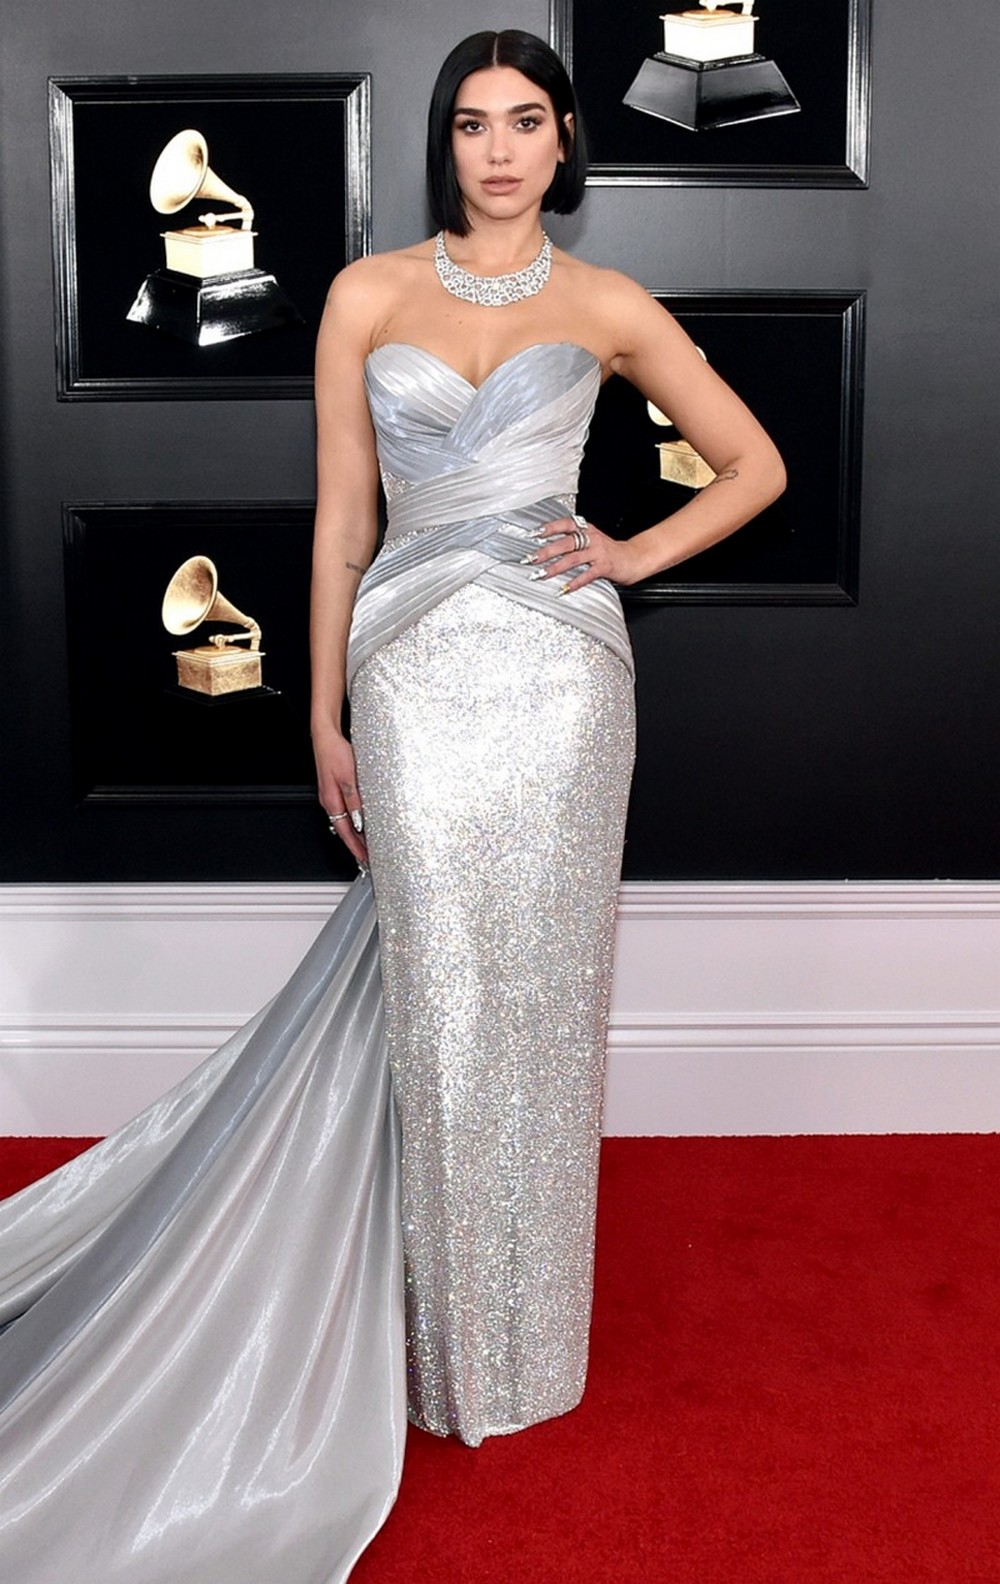 CovetED Reveals The Best High-Fashion Looks Of The 2019 Grammys 2019 grammys CovetED Reveals The Best High-Fashion Looks Of The 2019 Grammys CovetED Reveals The Best High Fashion Looks Of The 2019 Grammys 7